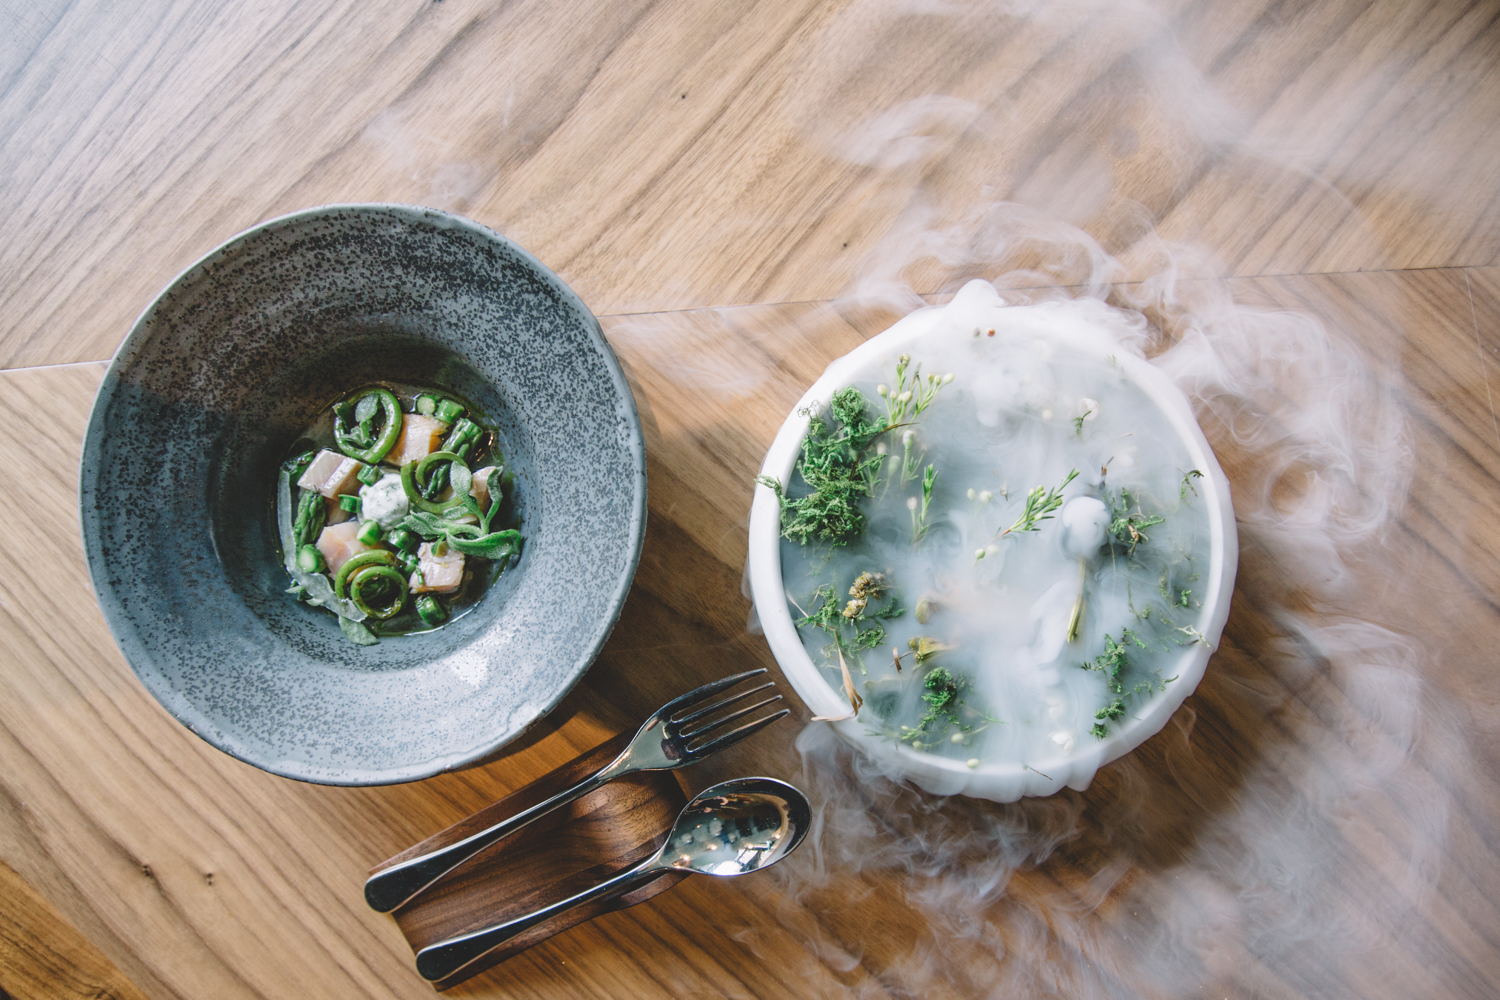 Smoked trout with fiddlehead ferns, asparagus, lemon verbena ice, and dill crème fraîche at Demi // Photo by Sam Ziegler